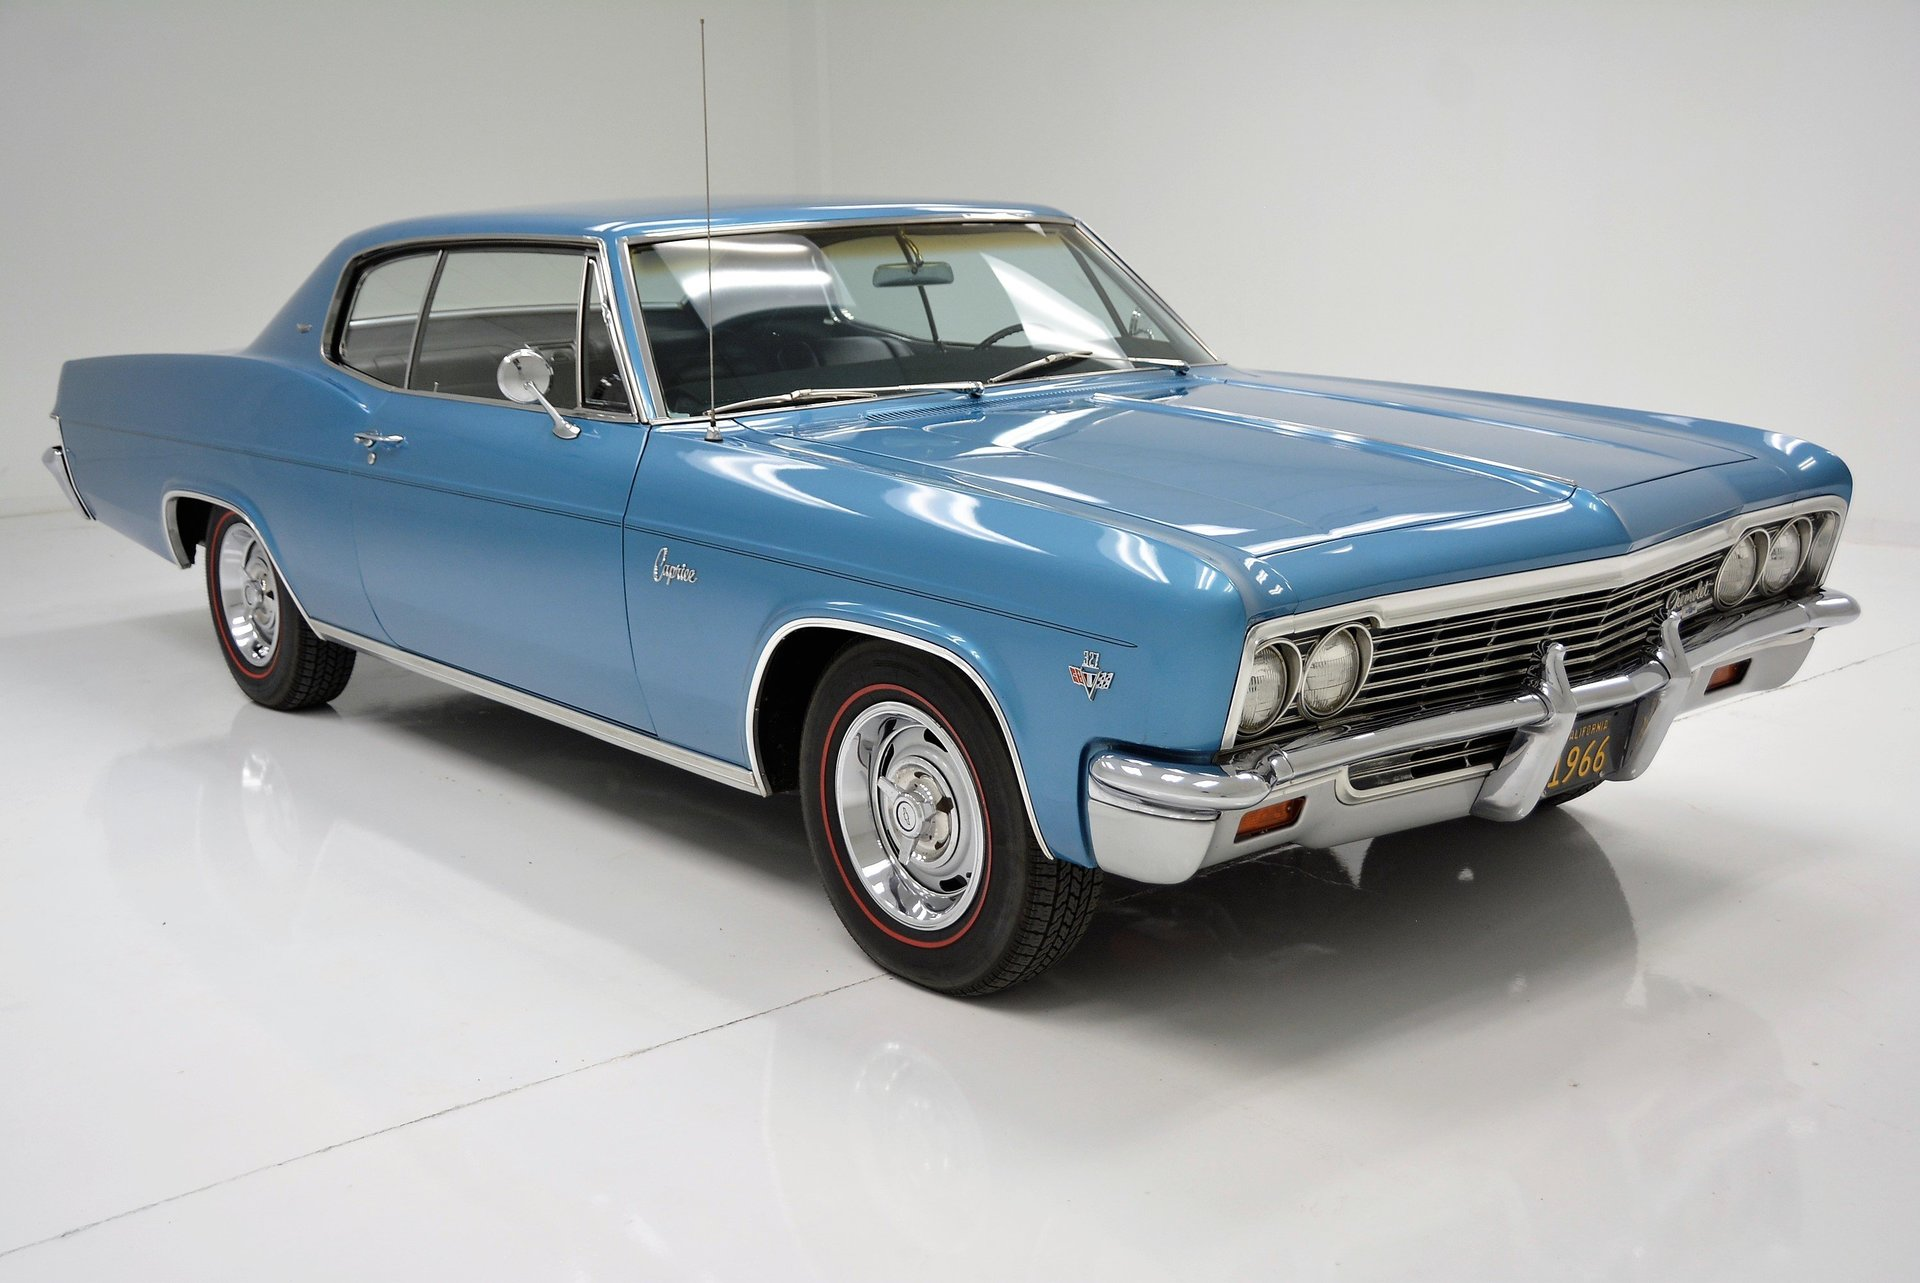 1966 Chevrolet Caprice Berlin Motors Chevy Wagon For Sale